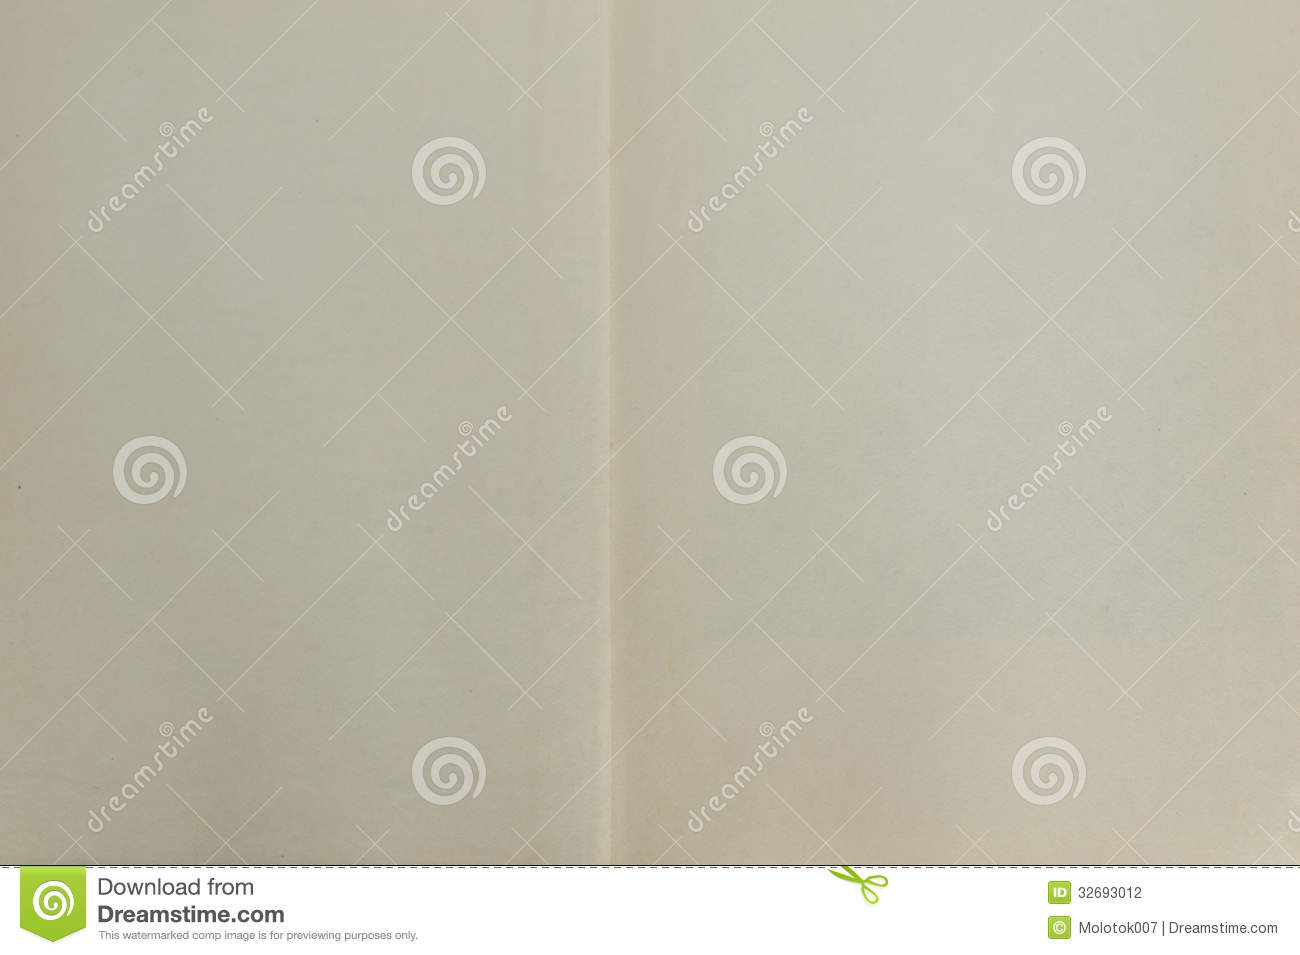 Grunge Book Cover Texture : Old grunge book paper stock photography image